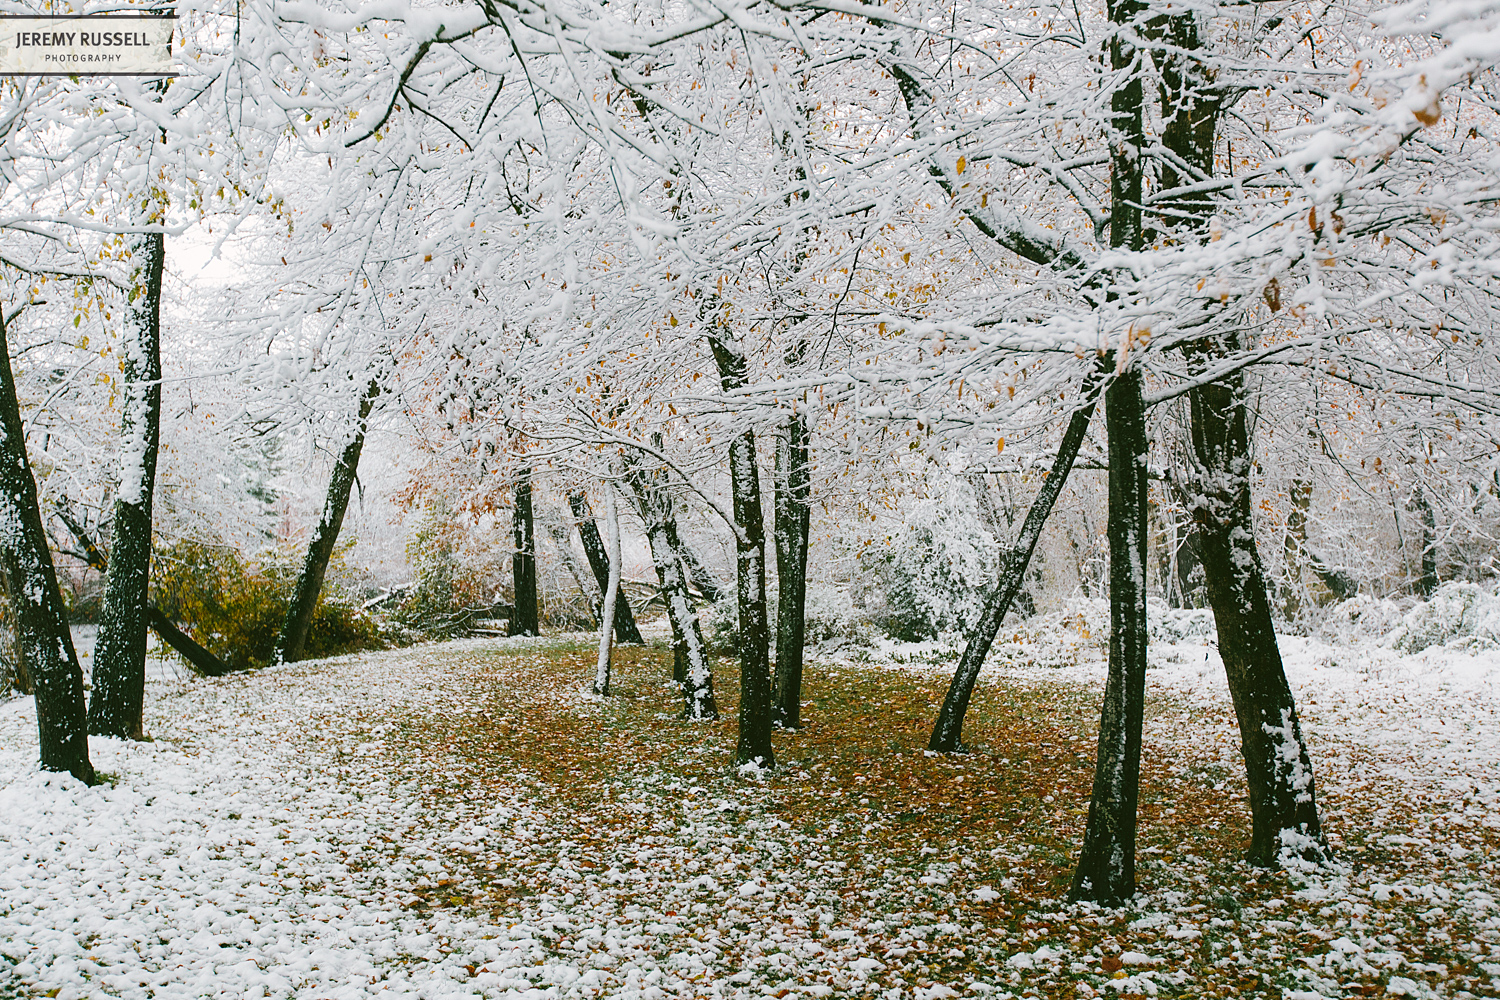 Jeremy-Russell-14-Asheville-Fall-Snow-5.jpg